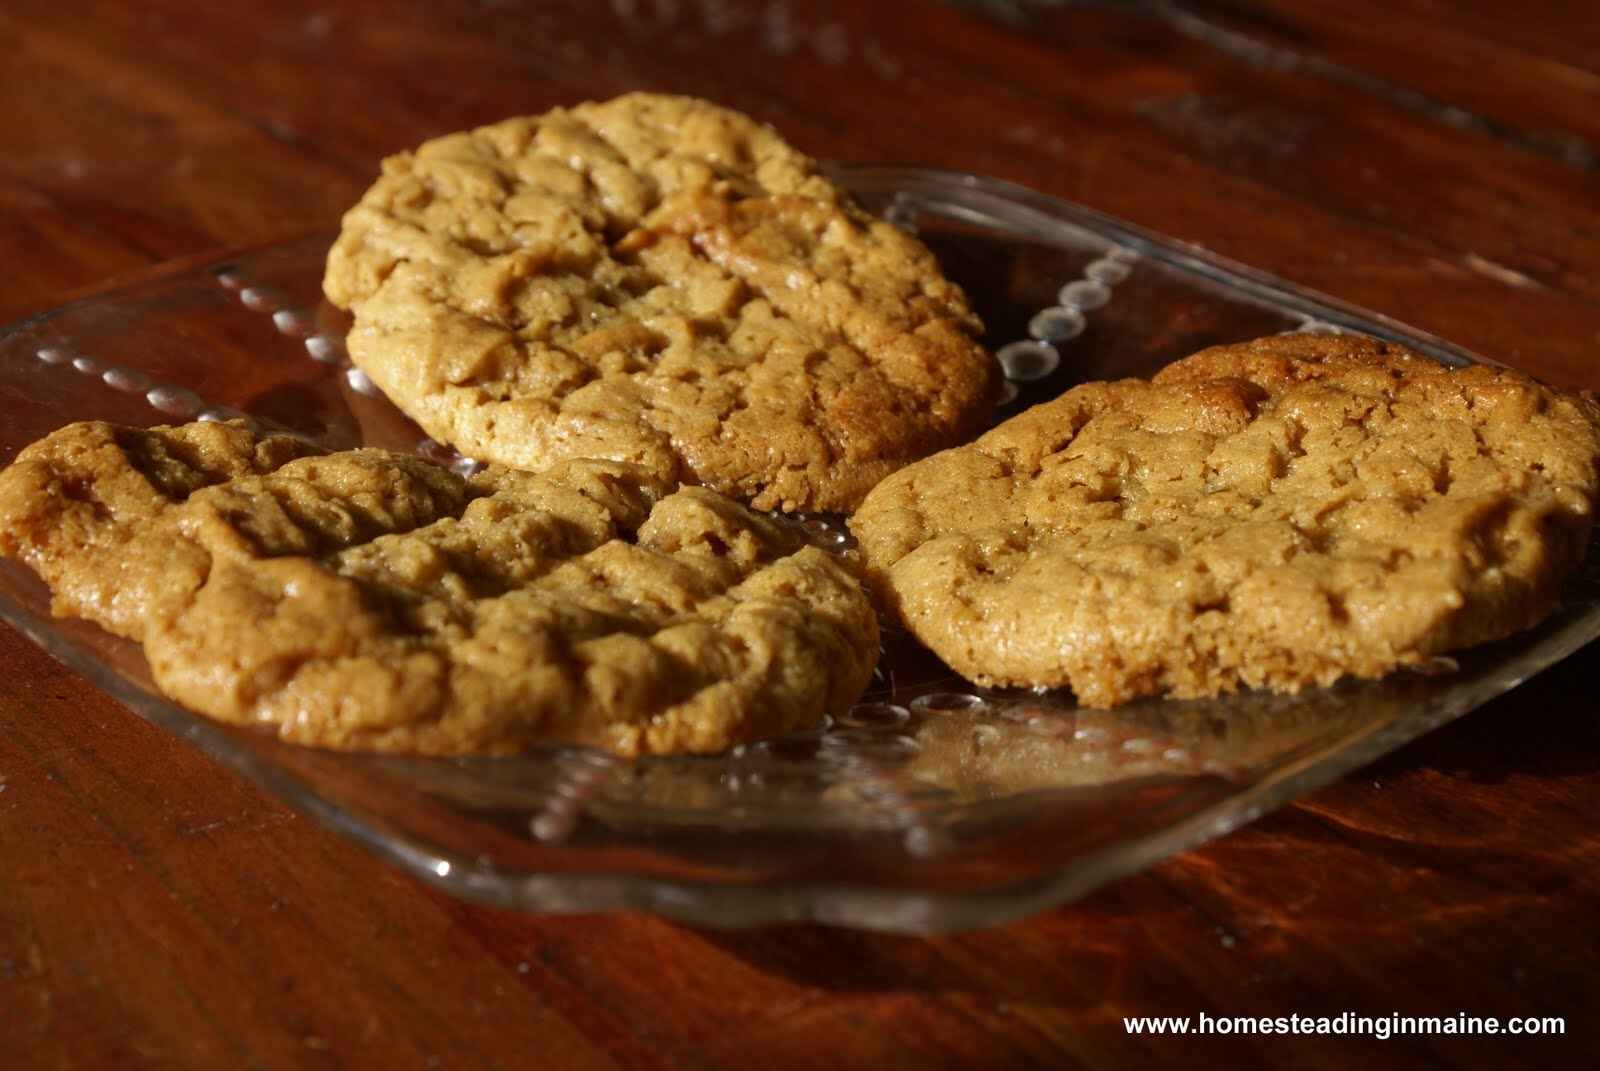 Easy Baking Recipes, Desserts: Flour-less Peanut Butter Cookies